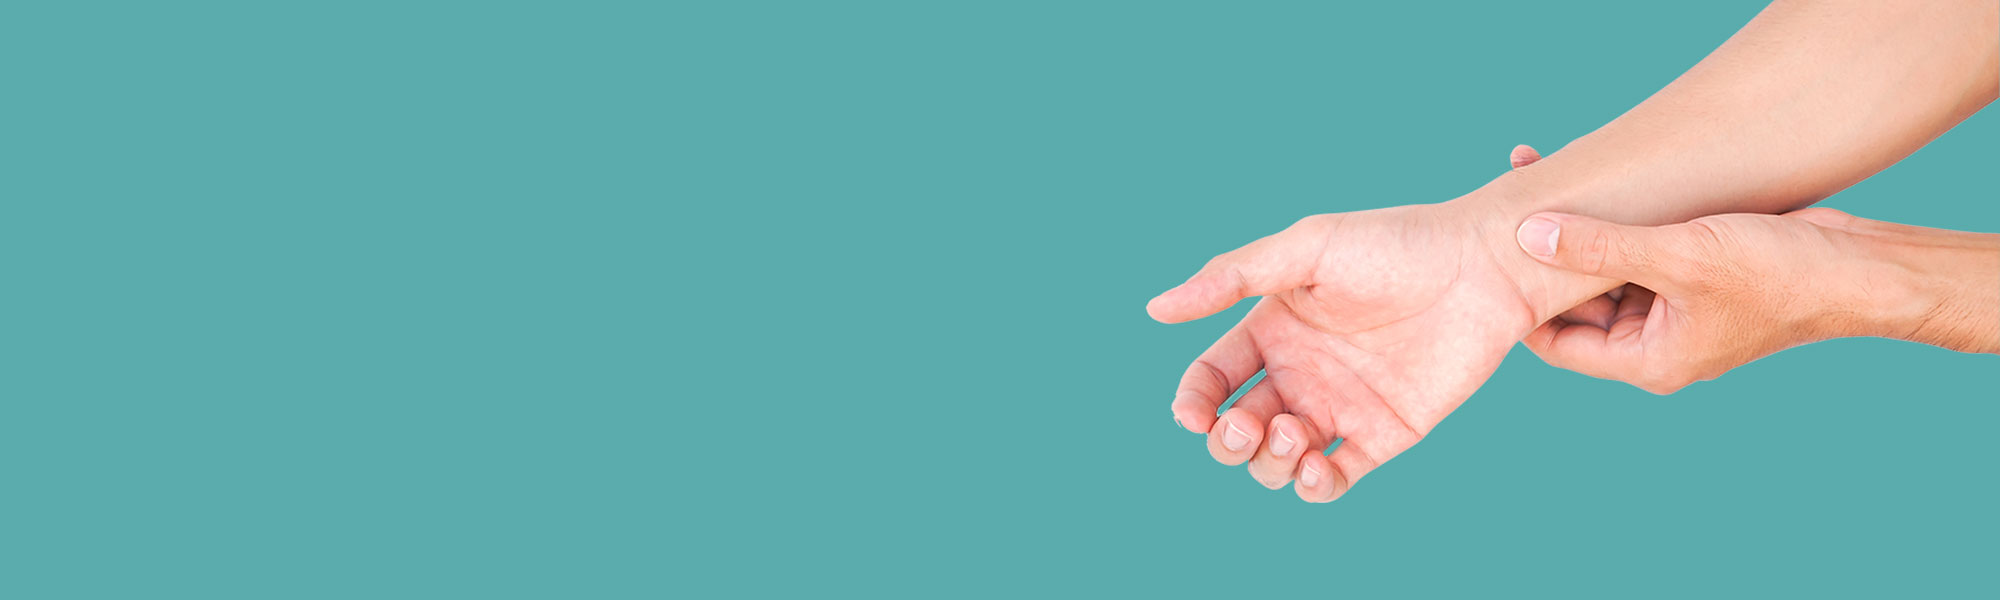 BASAL THUMB ARTHRITIS - Arthritis of the basal joint of the thumb is common in women and rather less common in men